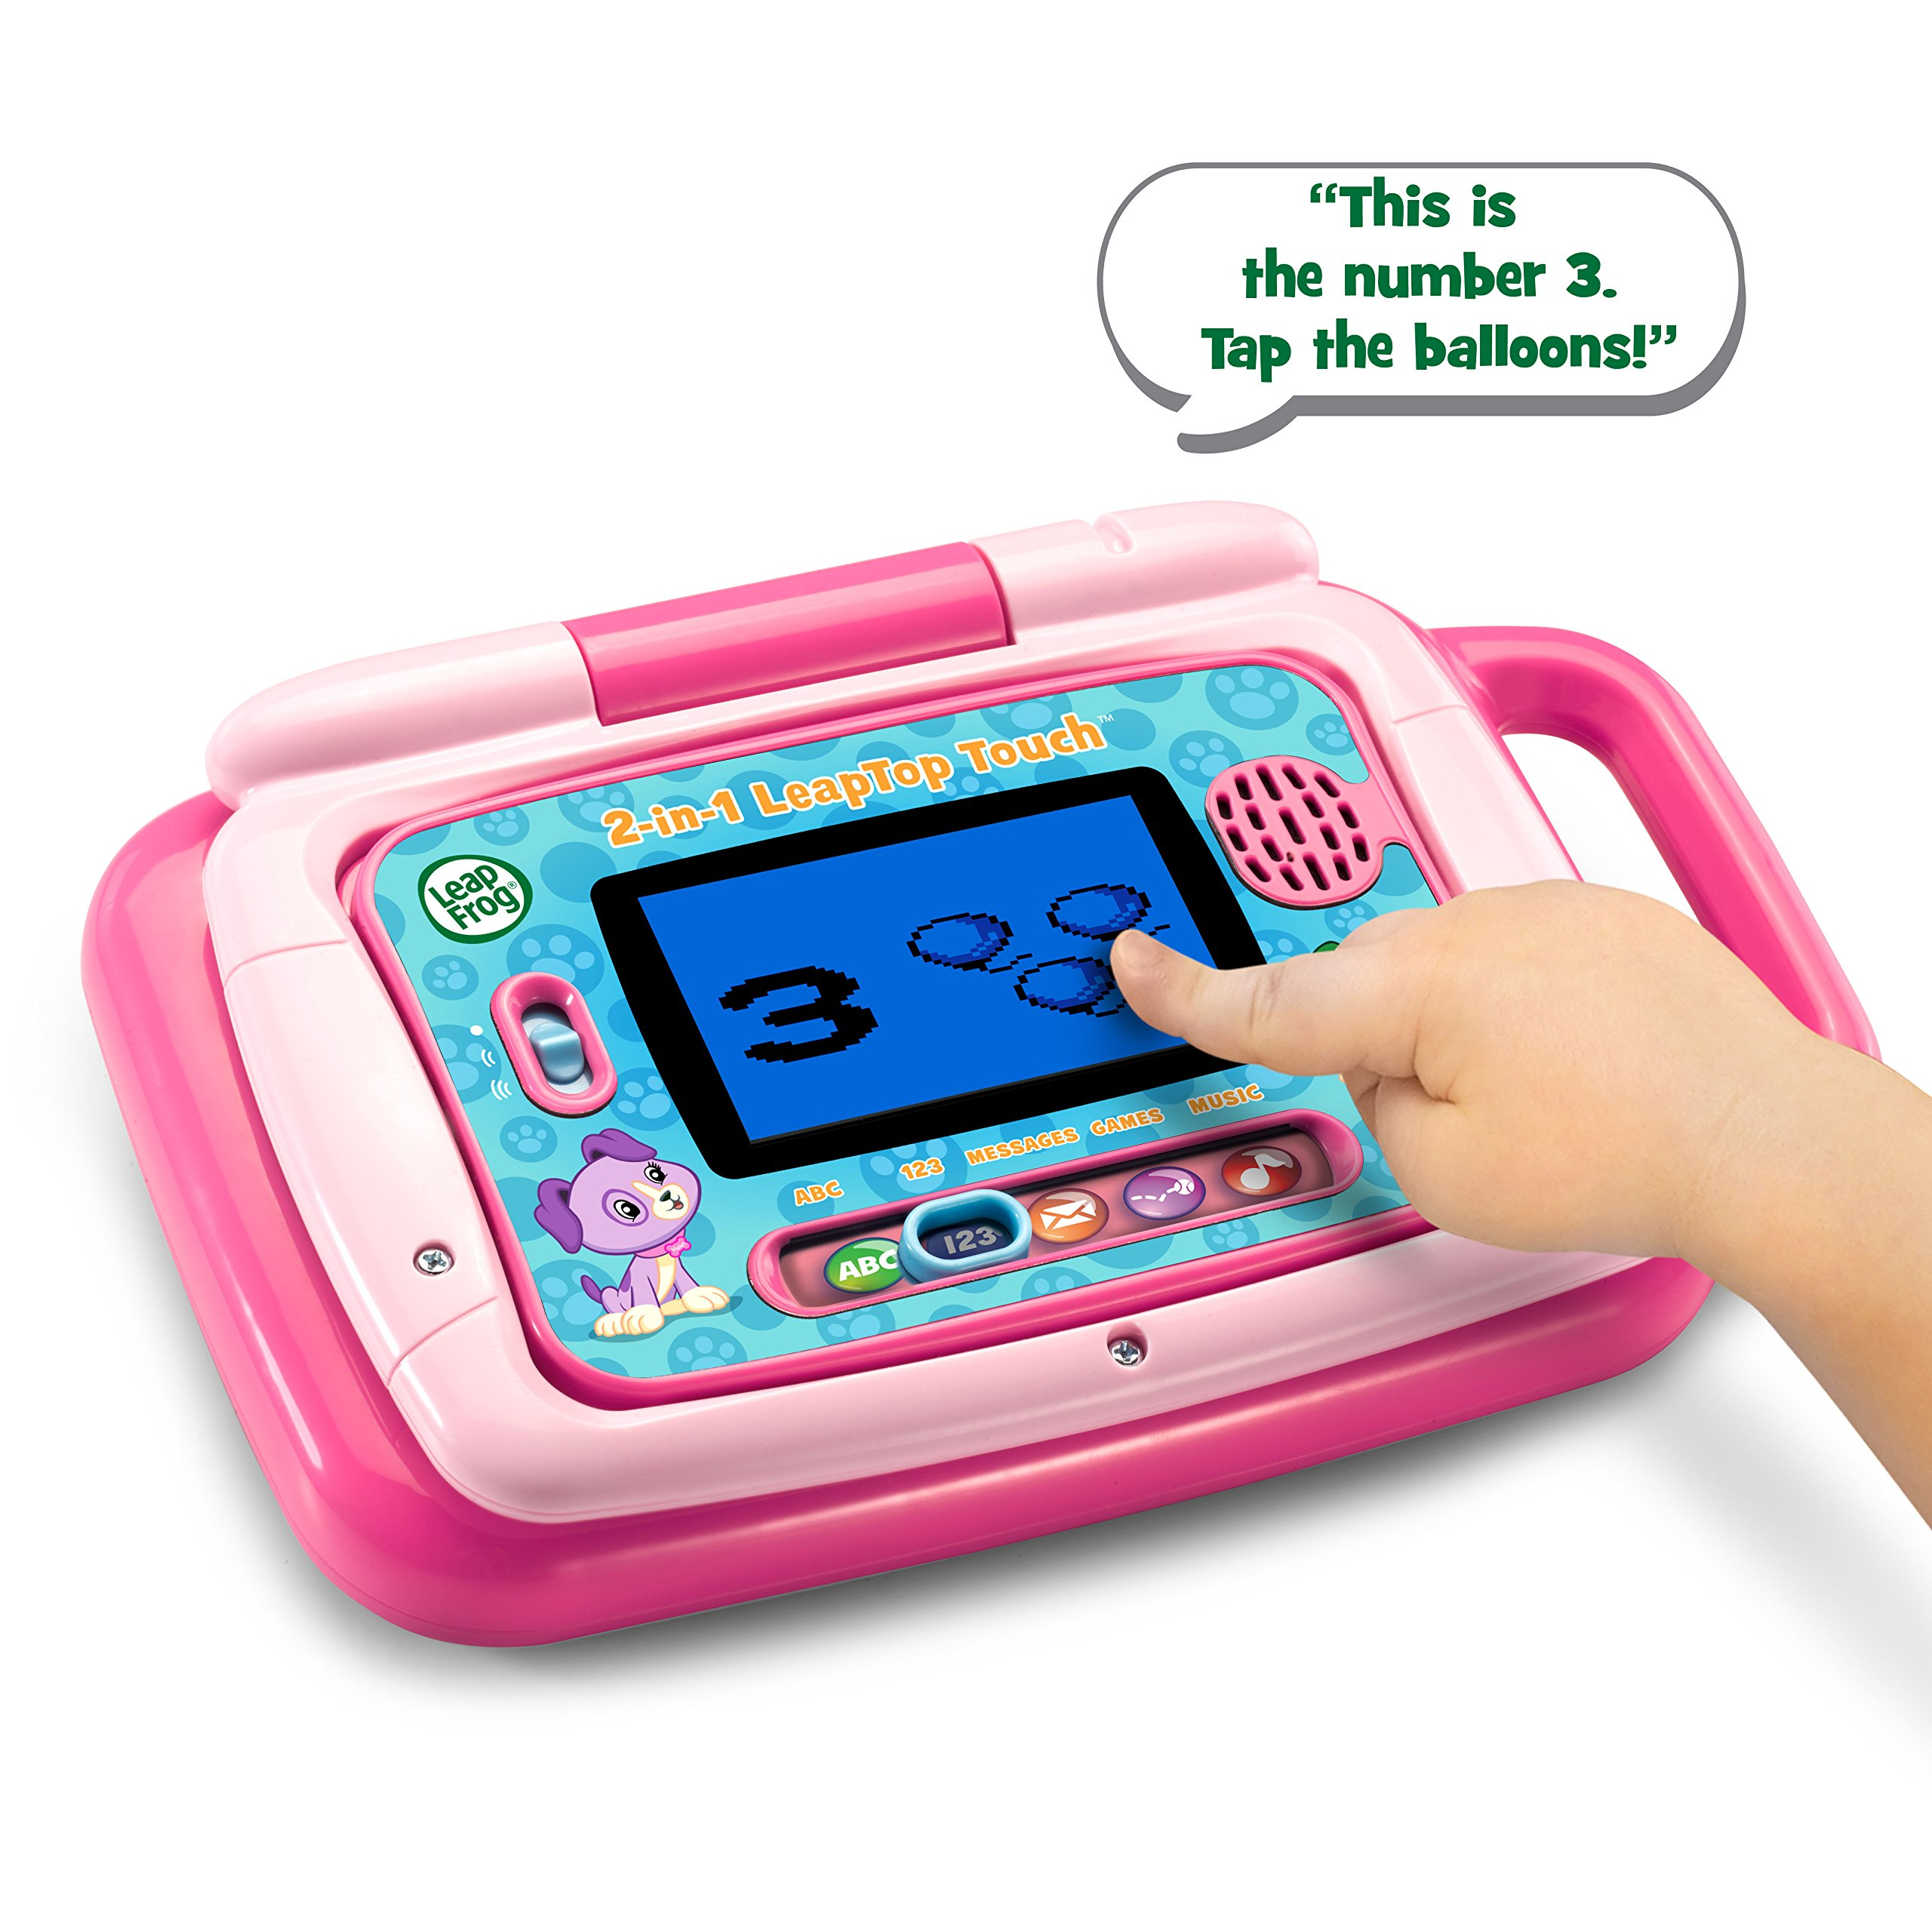 LeapFrog 2-in-1 LeapTop Touch, Pink by LeapFrog (Image #4)